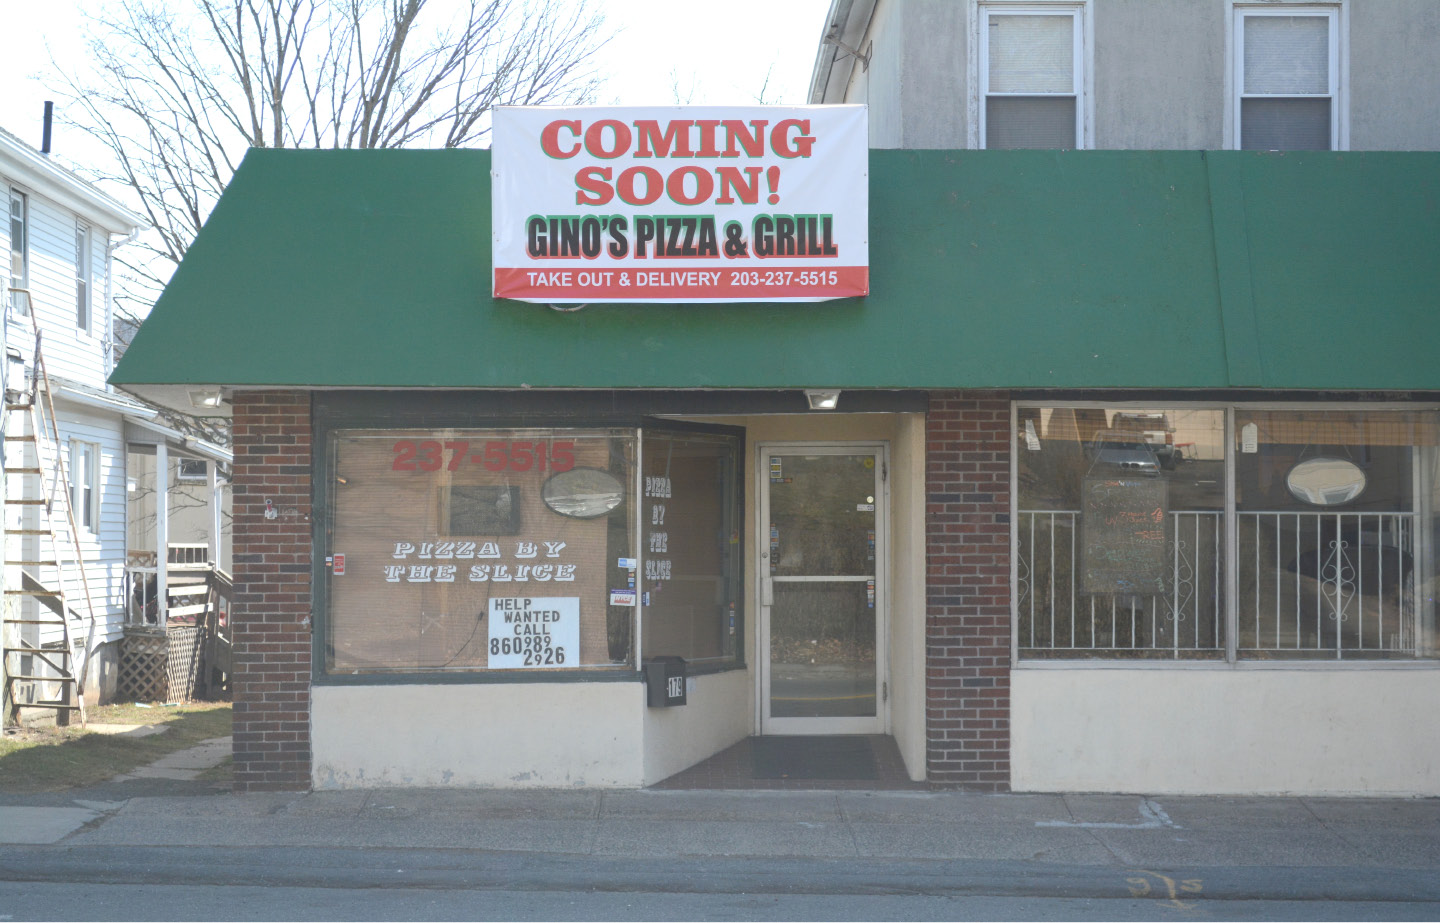 The future Gino's Pizza & Grill, at 177 Broad St., Meriden. | Bryan Lipiner, Record-Journal